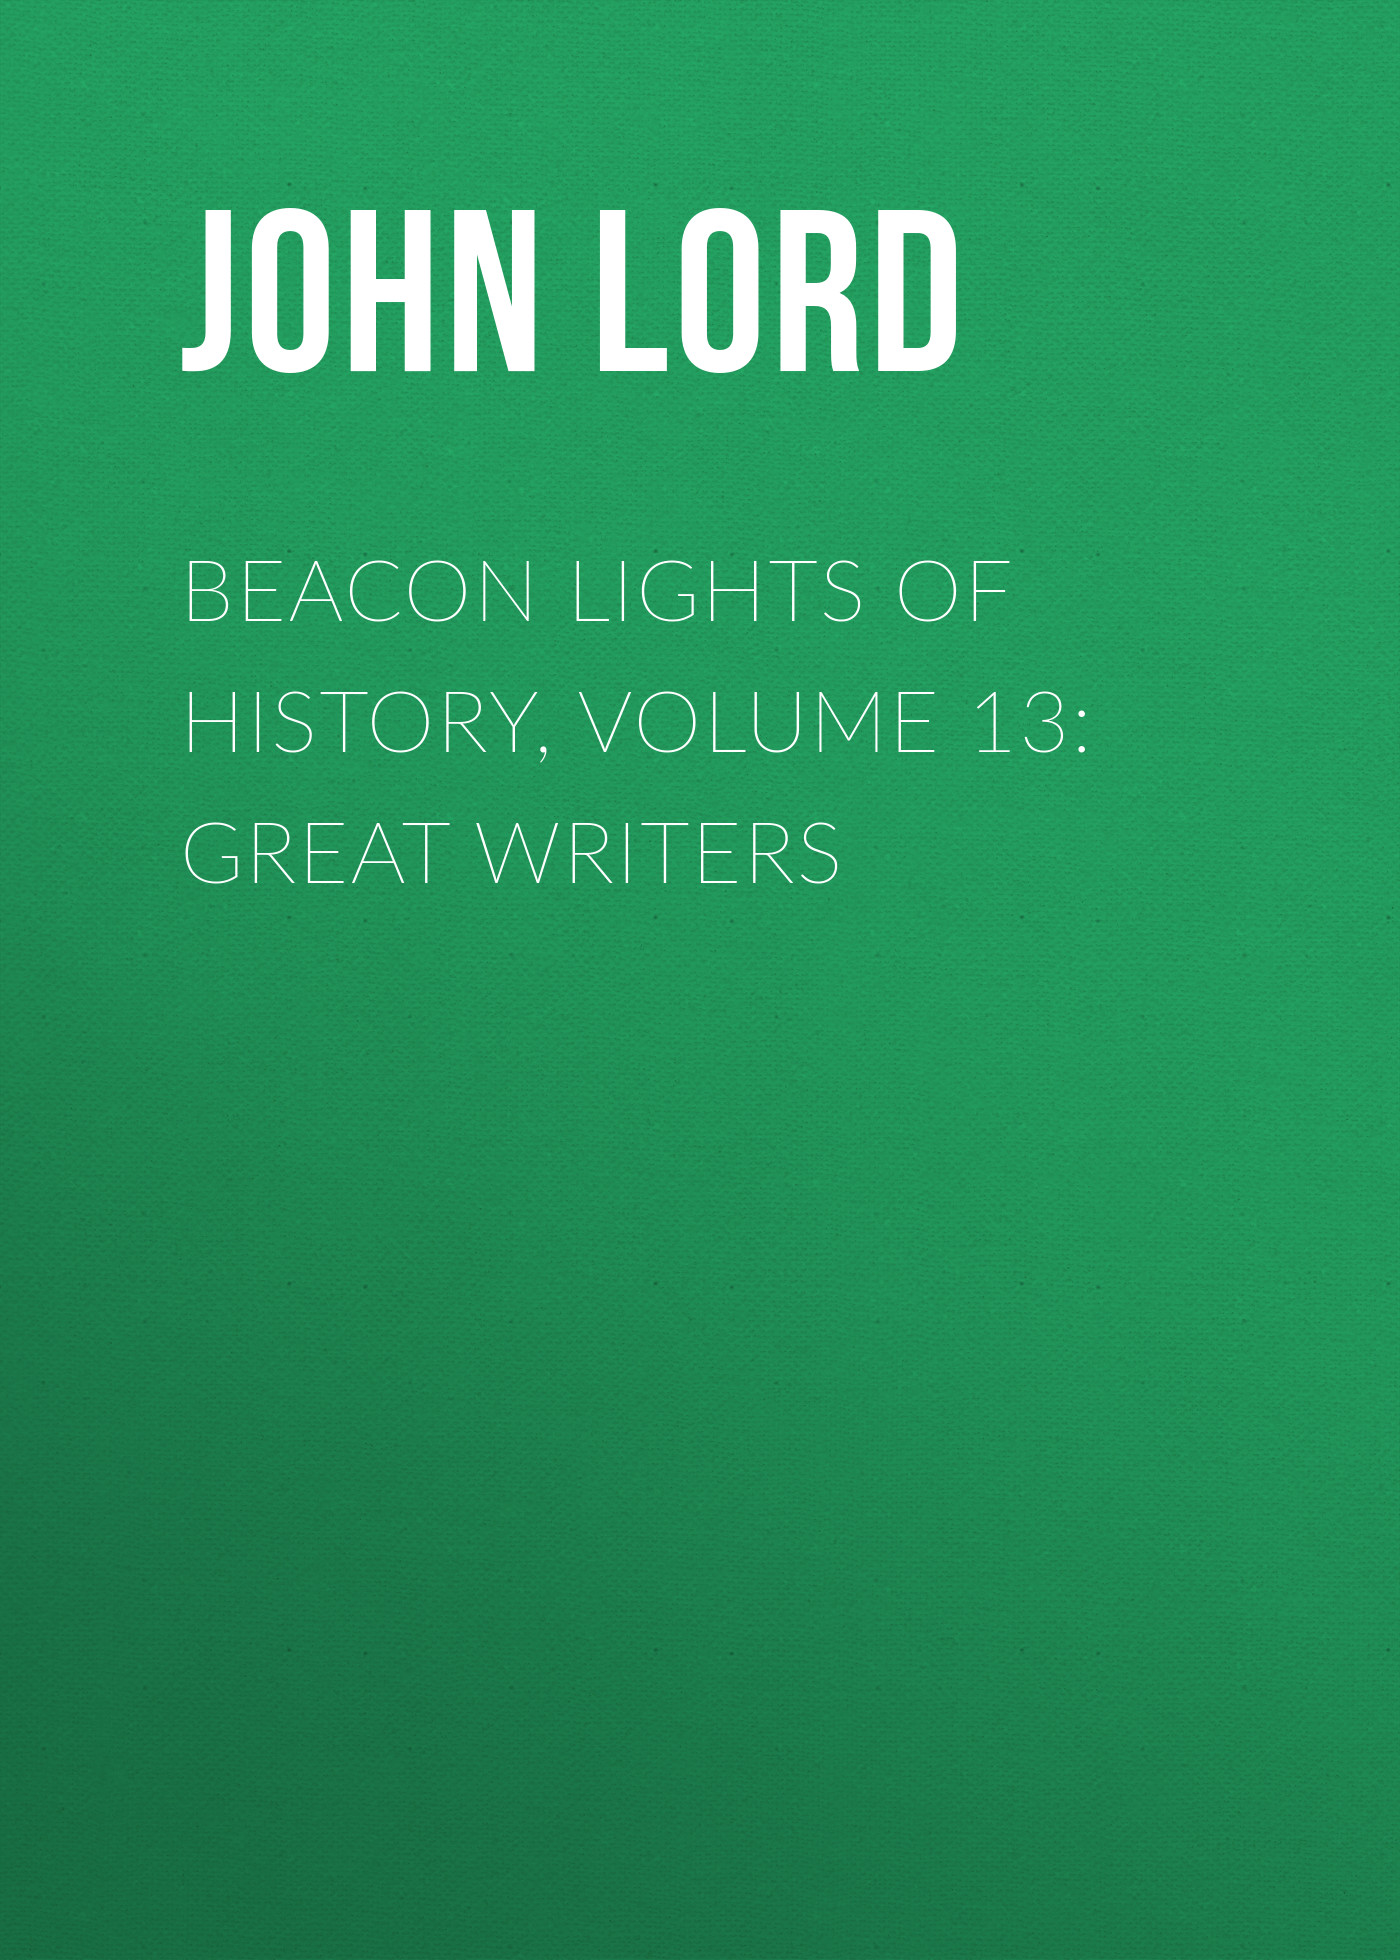 цена John Lord Beacon Lights of History, Volume 13: Great Writers